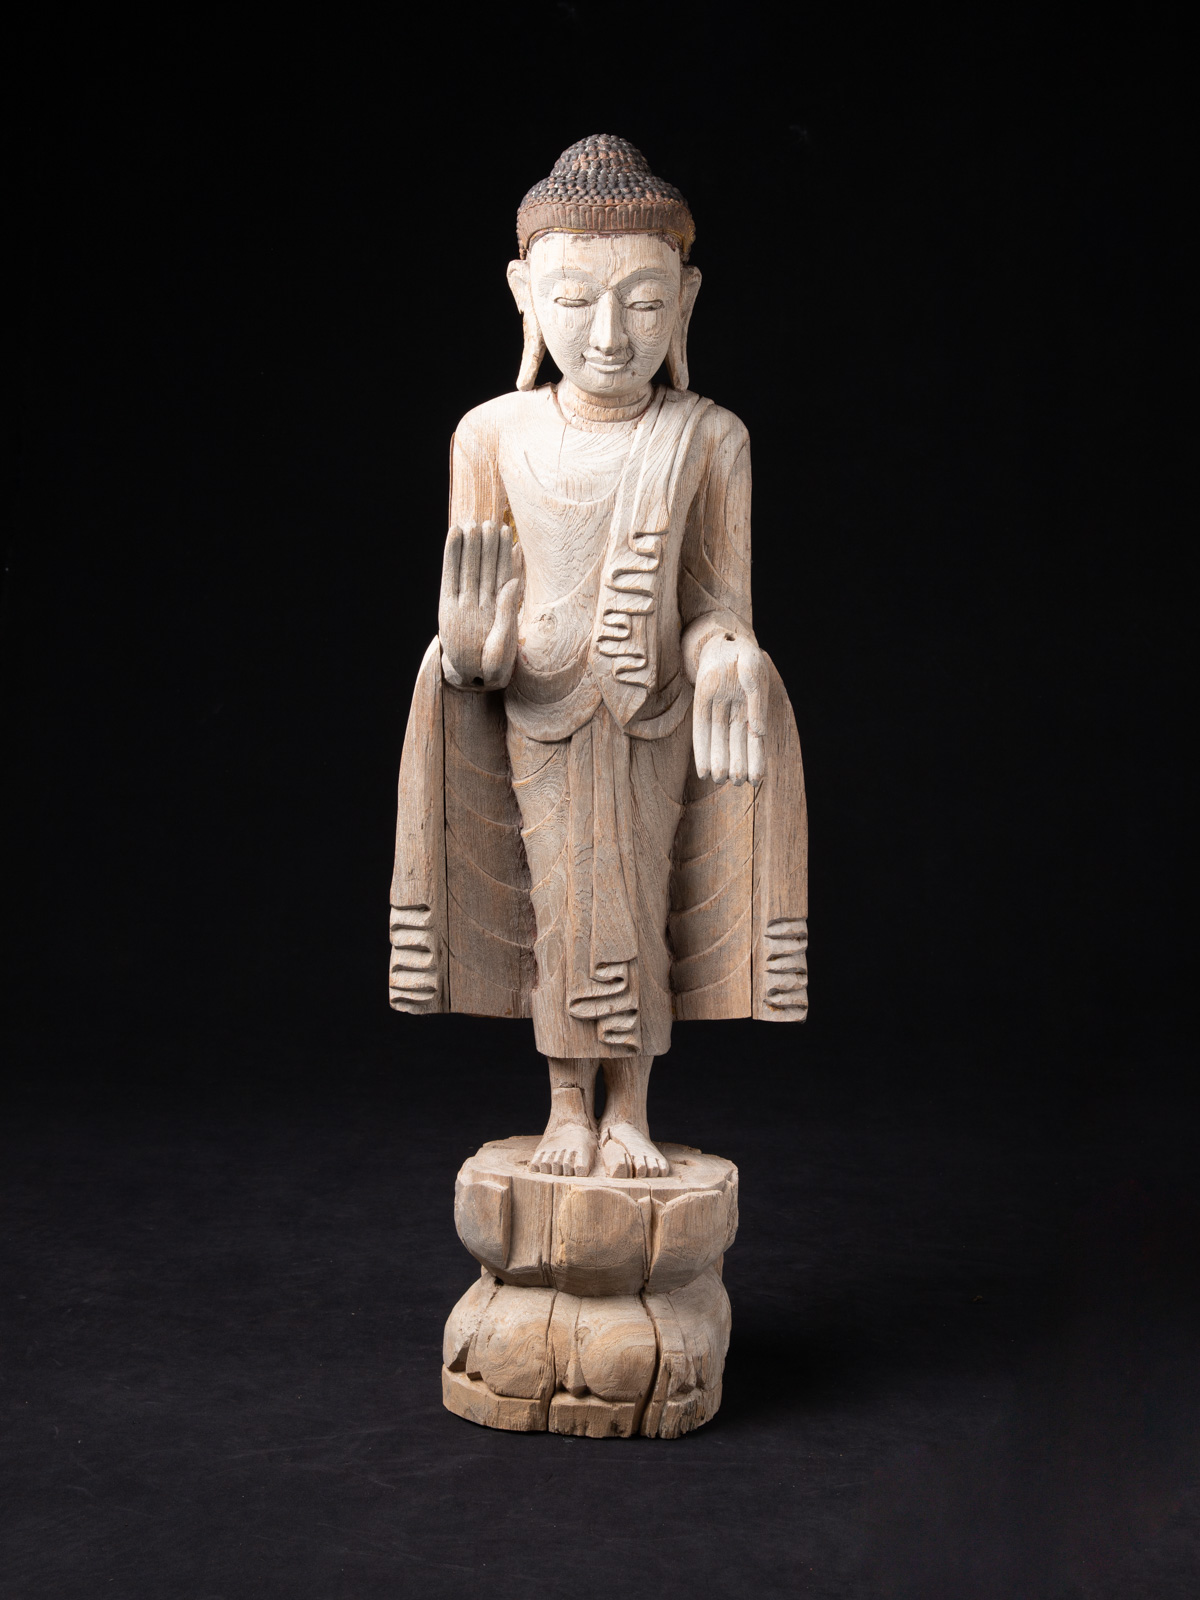 Old teakwooden Mandalay Buddha statue from Burma made from Wood